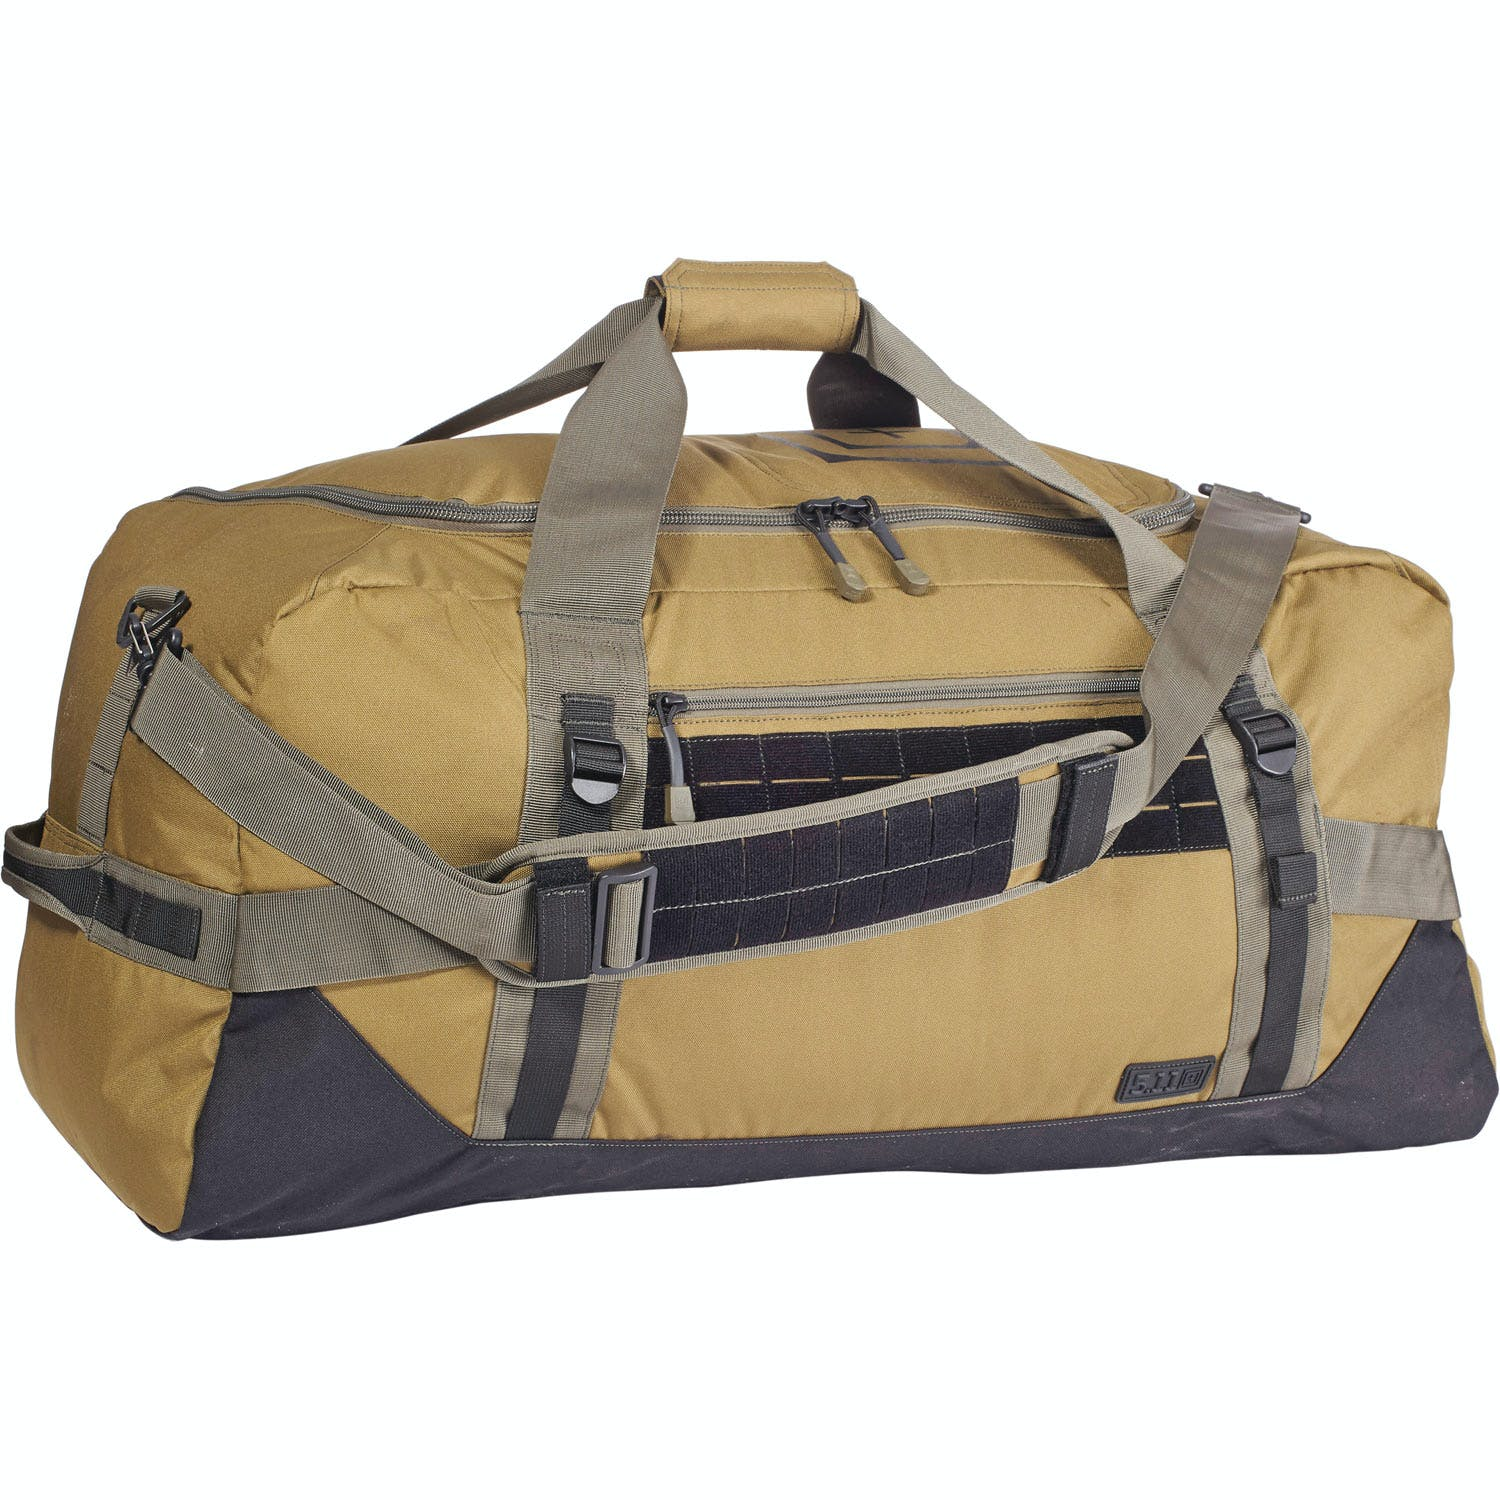 5 11 Tactical Nbt Xray Duffle Bag From Nightgear Uk